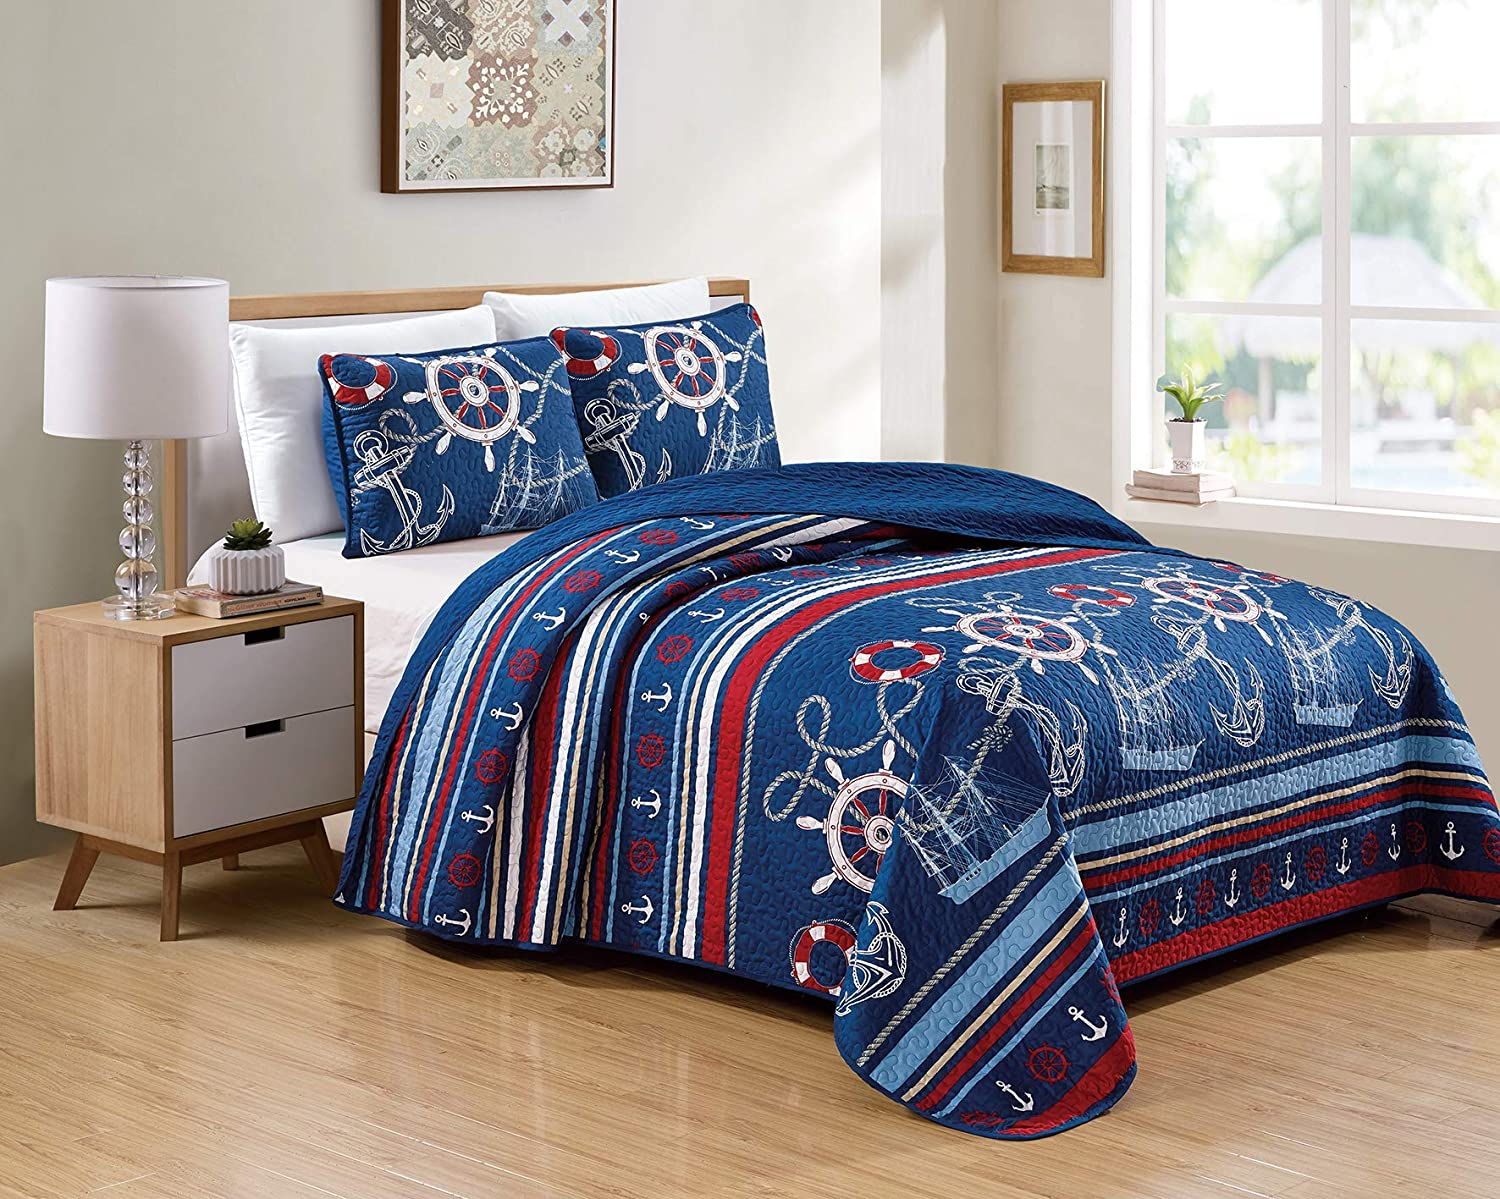 Kids Zone Home Linen Bedspread Set Navy Blue White Red Ranking Latest item TOP12 Ships Rop